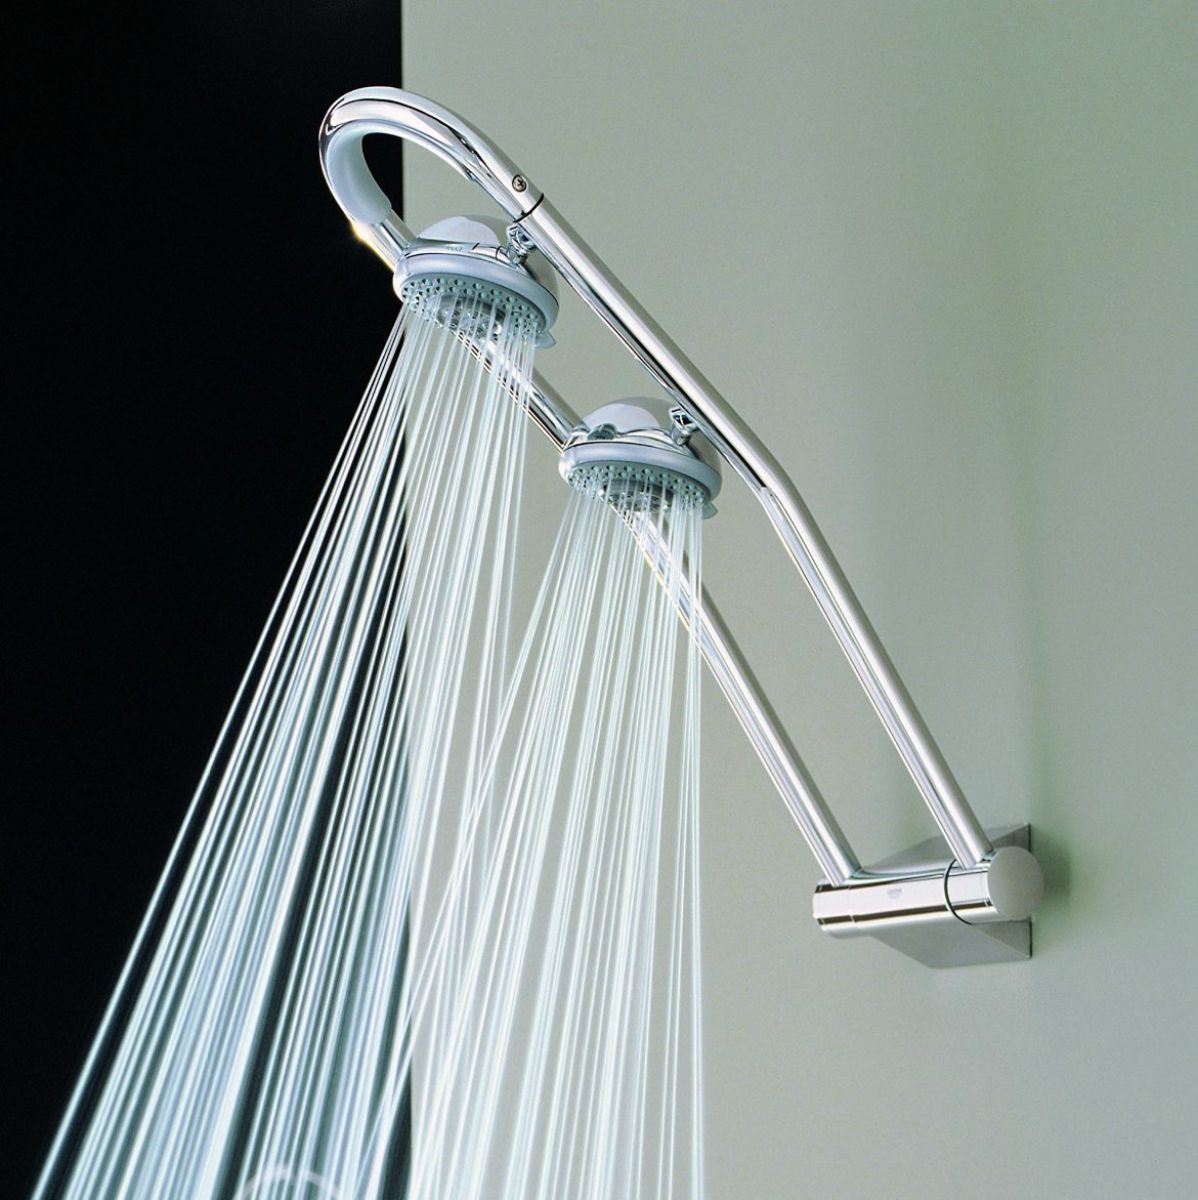 Best 20 Dual Shower Heads Ideas On Pinterest: Grohe Freehander Wall MOunted Shower System : UK Bathrooms